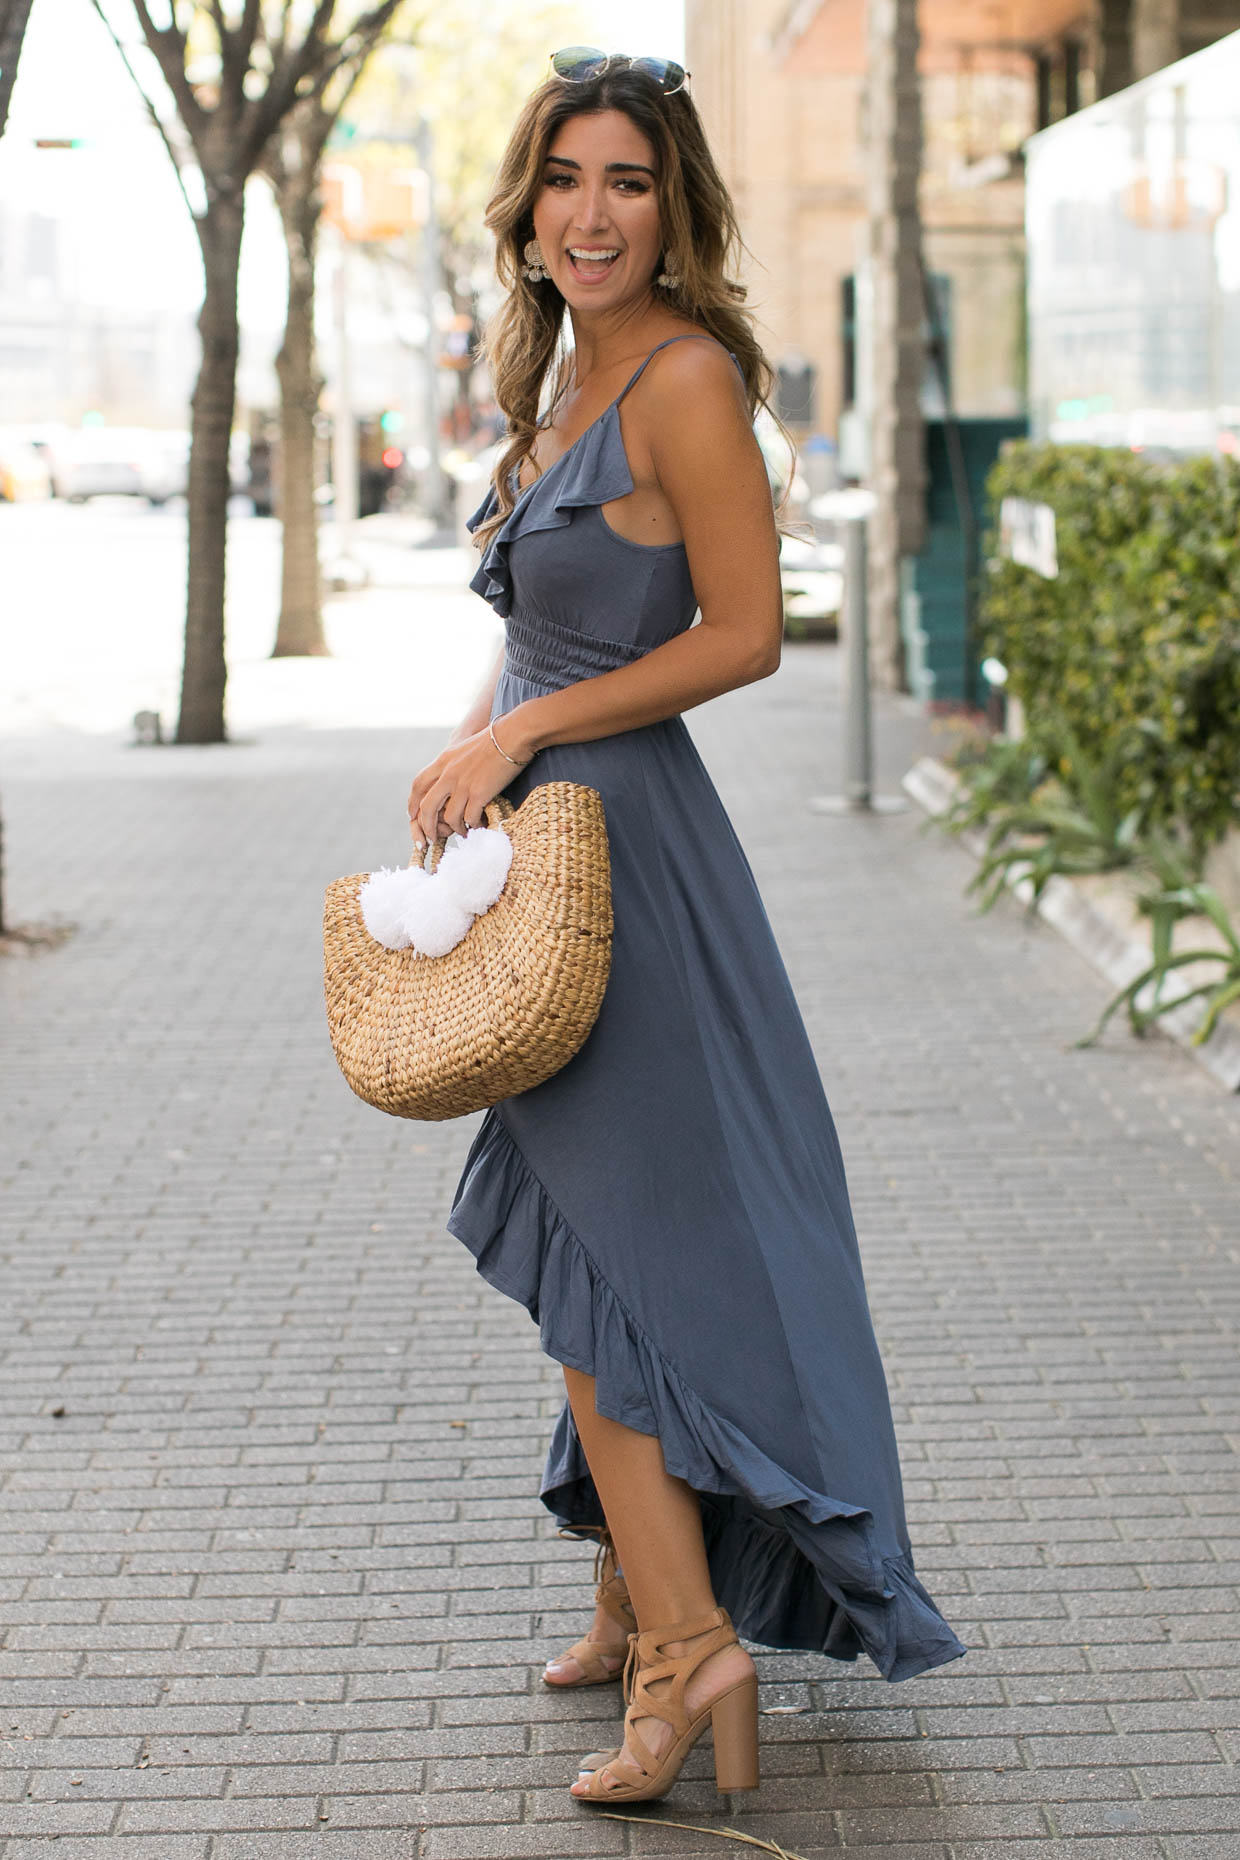 express spring outfit